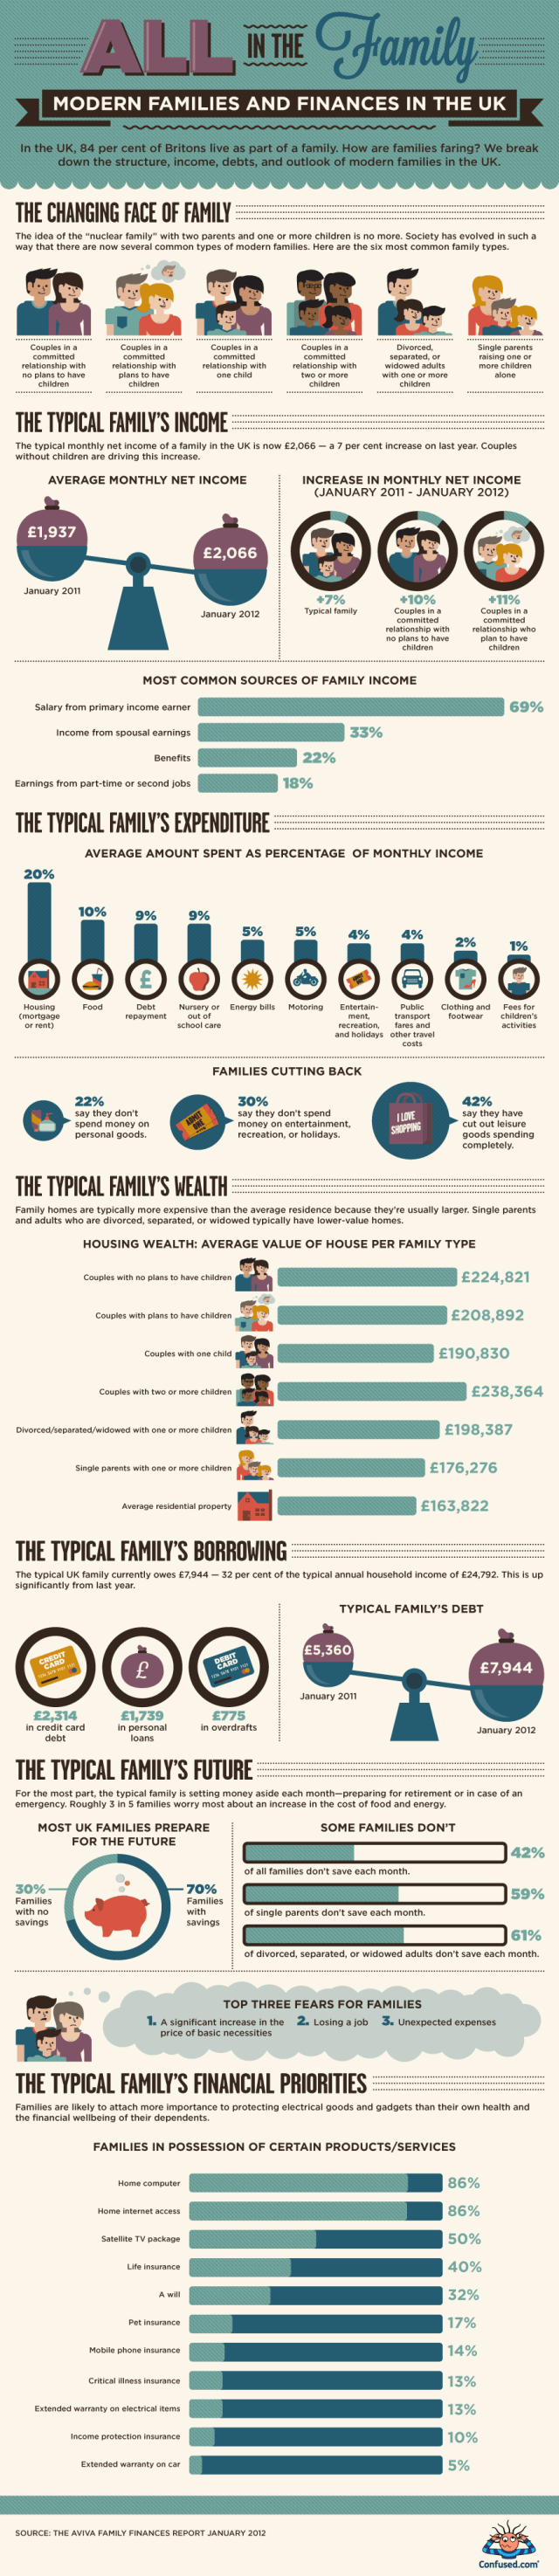 The Six Types of Modern Family and Their Finances